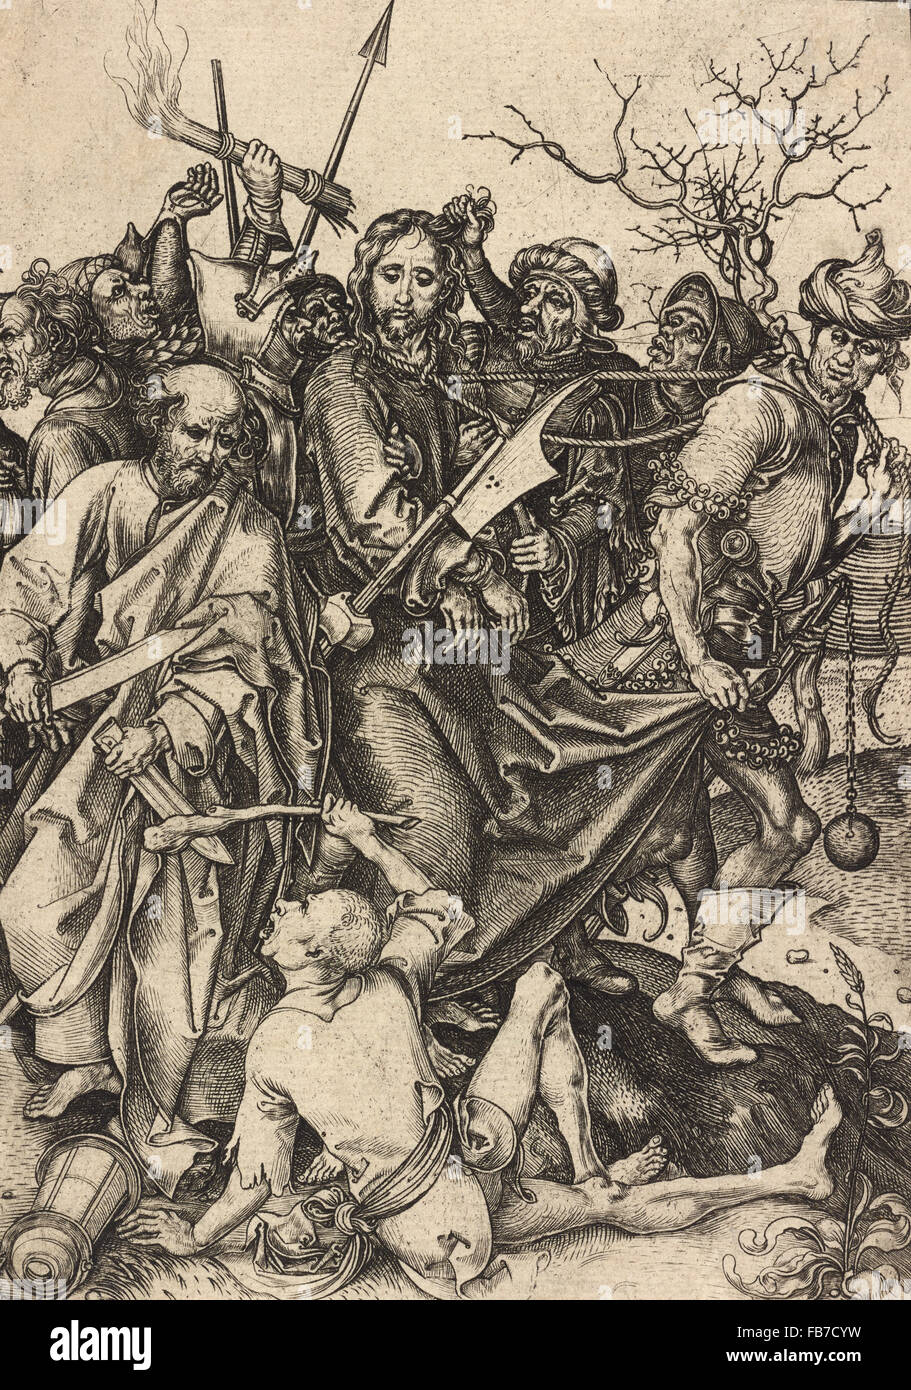 The Betrayal of Christ - Stock Image